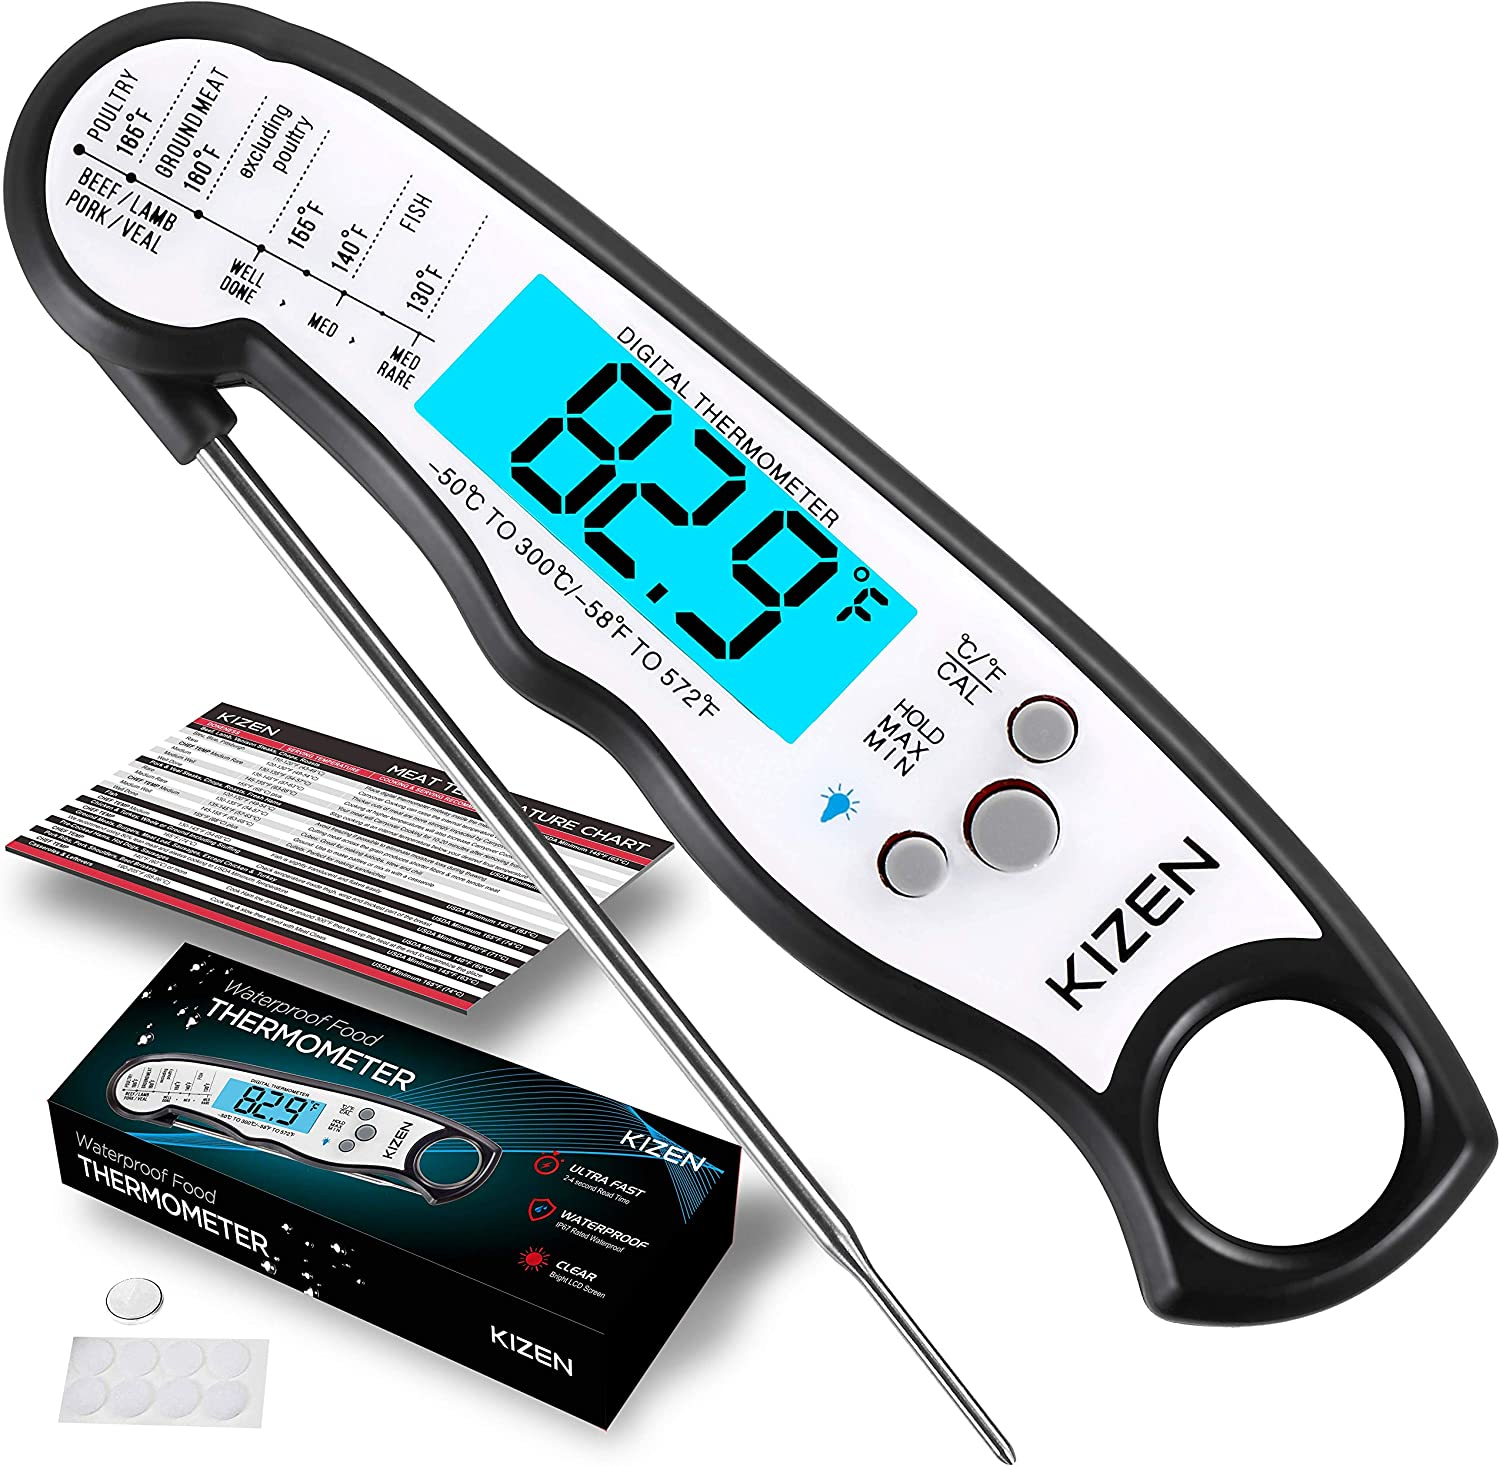 Kizen Instant Read Meat Thermometer - Best Waterproof Ultra Fast Thermometer with Backlight & Calibration. Kizen Digital Food Thermometer for Kitchen, Outdoor Cooking, BBQ, and Grill!: Kitchen & Dining